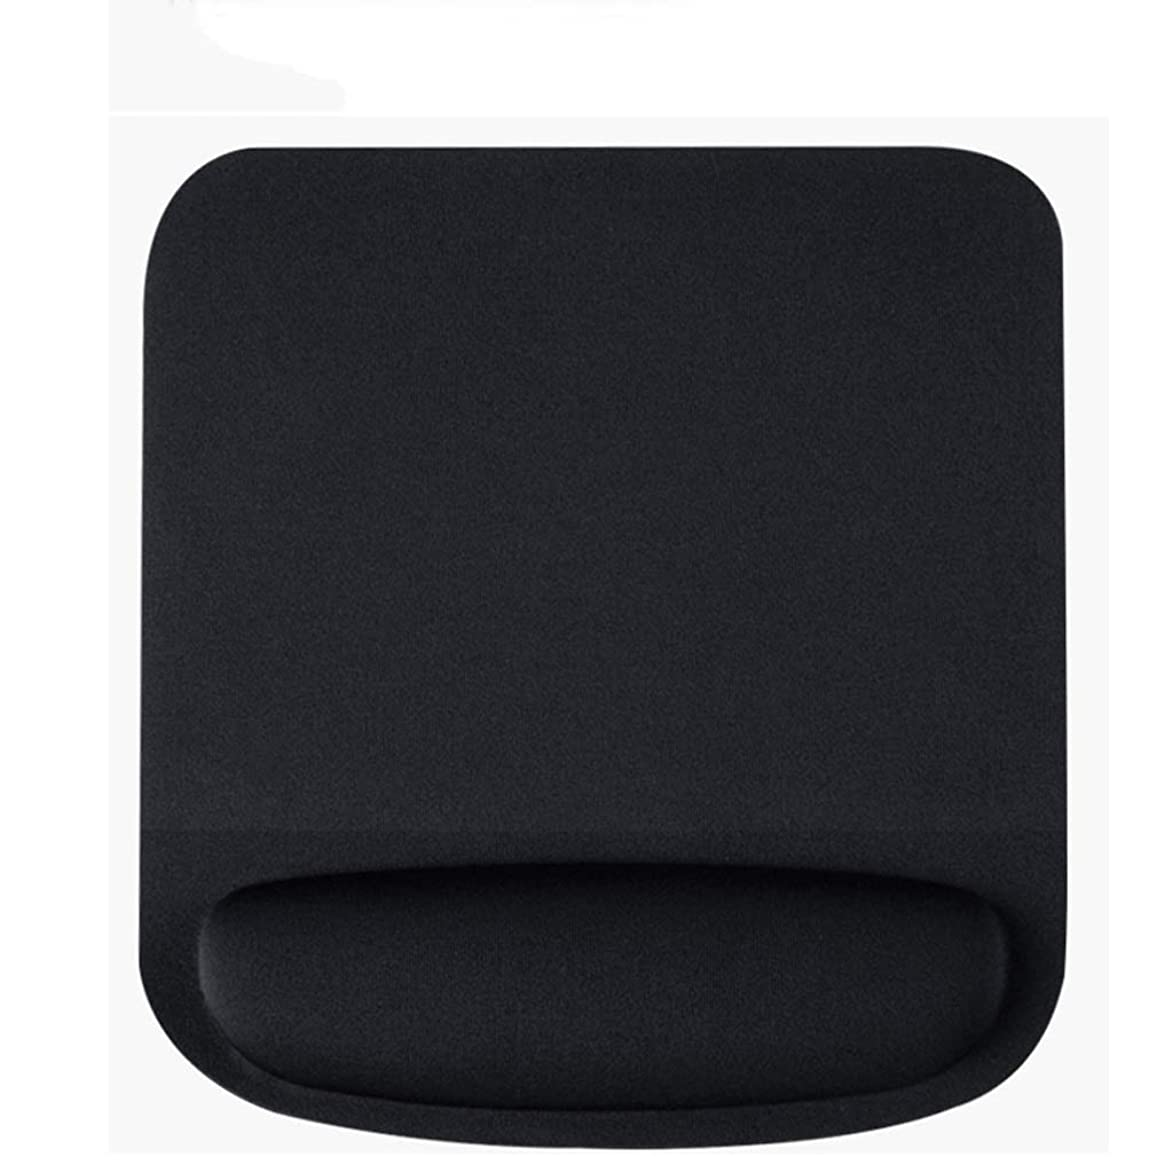 LLSDLS Memory Cotton Computer Game Mouse Pad Wrist Pad Padded Simple Office 3D Stereo Wrist Pad Rubber Boys and Girls Mouse Pad (Color : Black) dyg299551613400